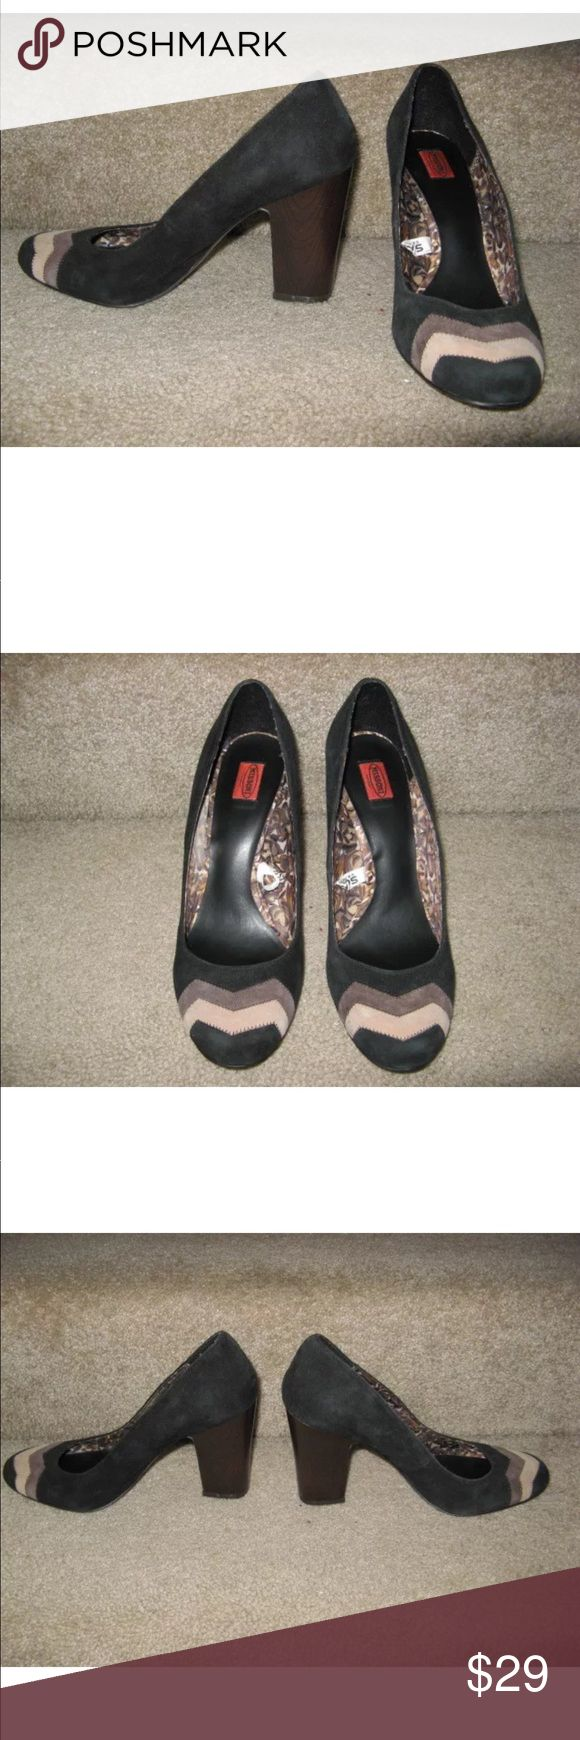 Missoni Target Shoes Pumps Size 9.5 Worn Once EUC